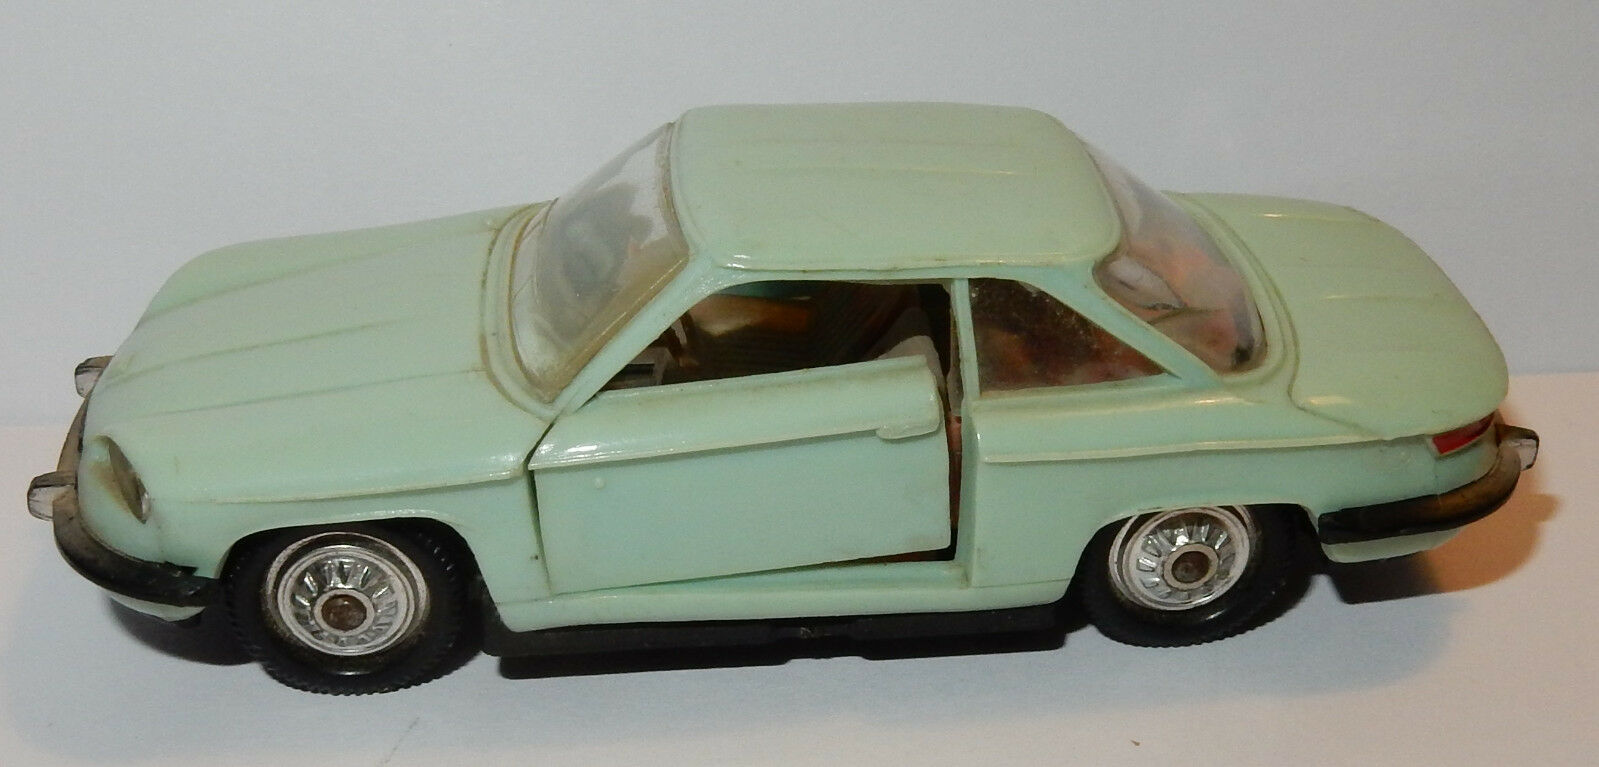 OLD NOREV MADE IN FRANCE 1966 PANHARD 24 CT 1963 1967 COUPE GREEN REF 72 b 1 43